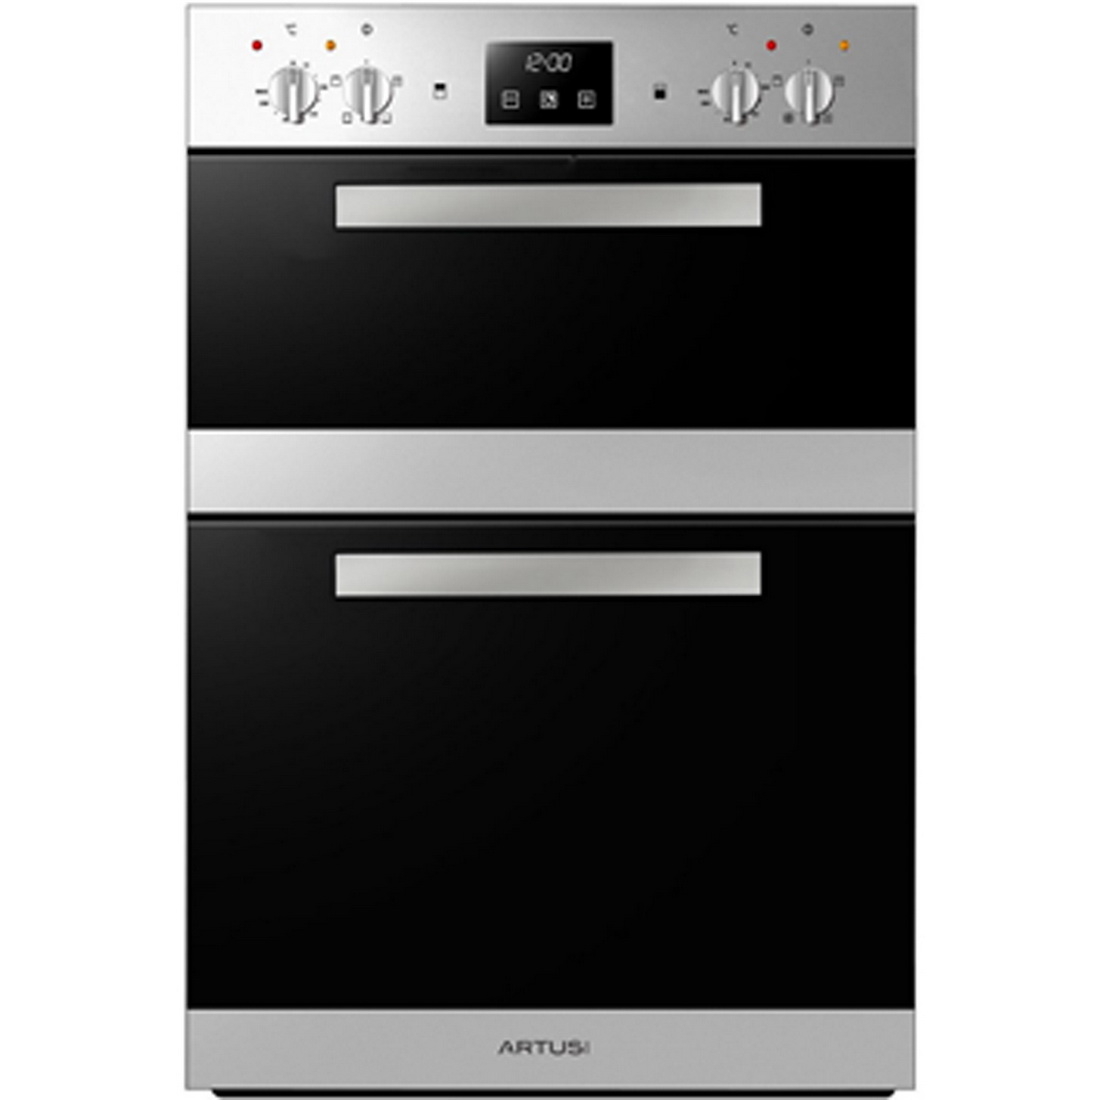 5 Function Built in Oven 60cm Stainless Steel AO888X